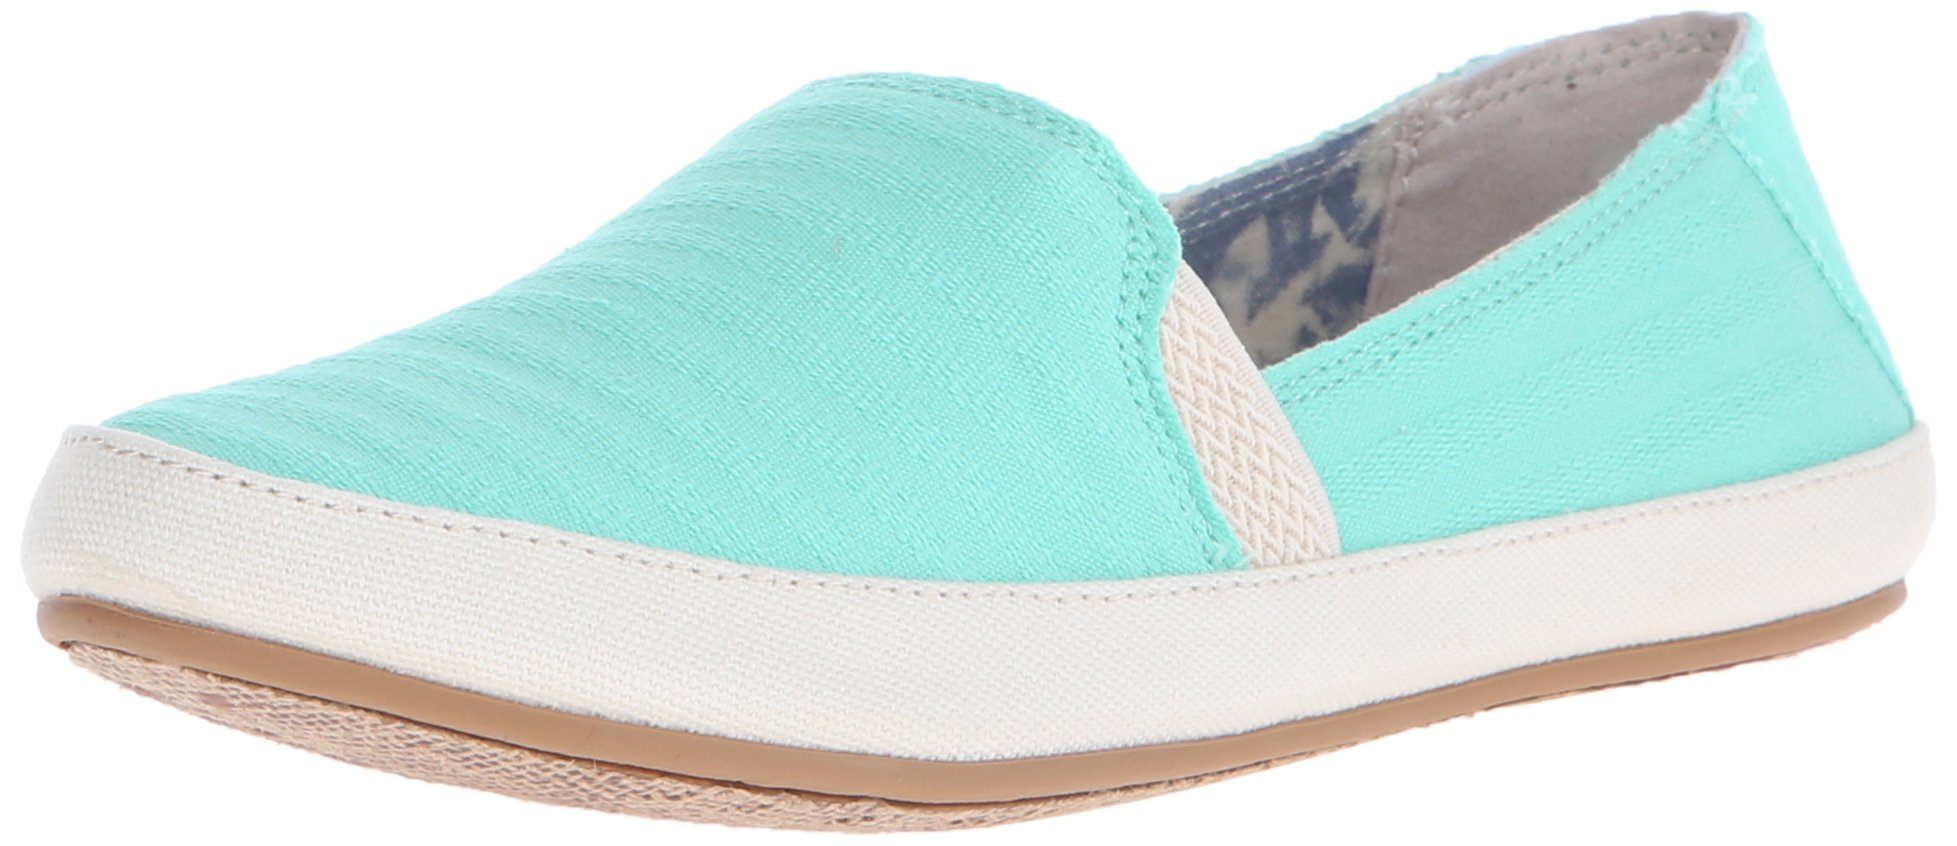 Reef Women's Shaded Summer Fashion Sneaker, Turquoise, 5 M US